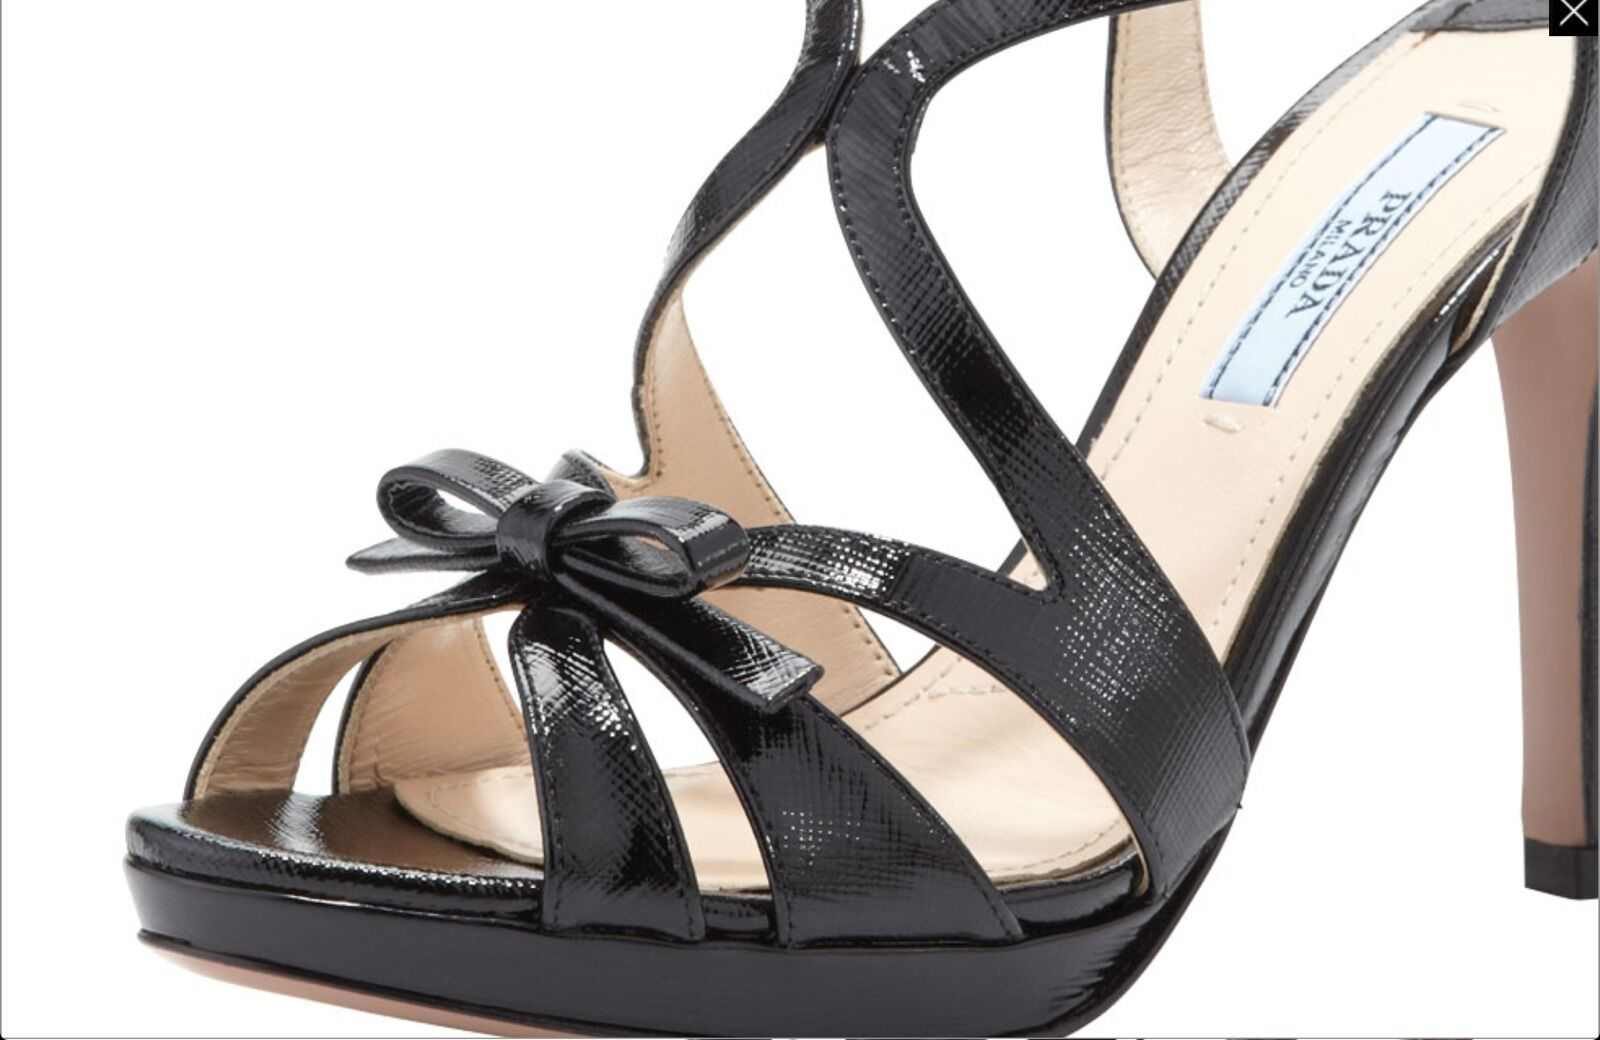 PRADA Vernice Black Patent Leather Sandals 38.5 NIB 8.5 Saffiano  790 shoes